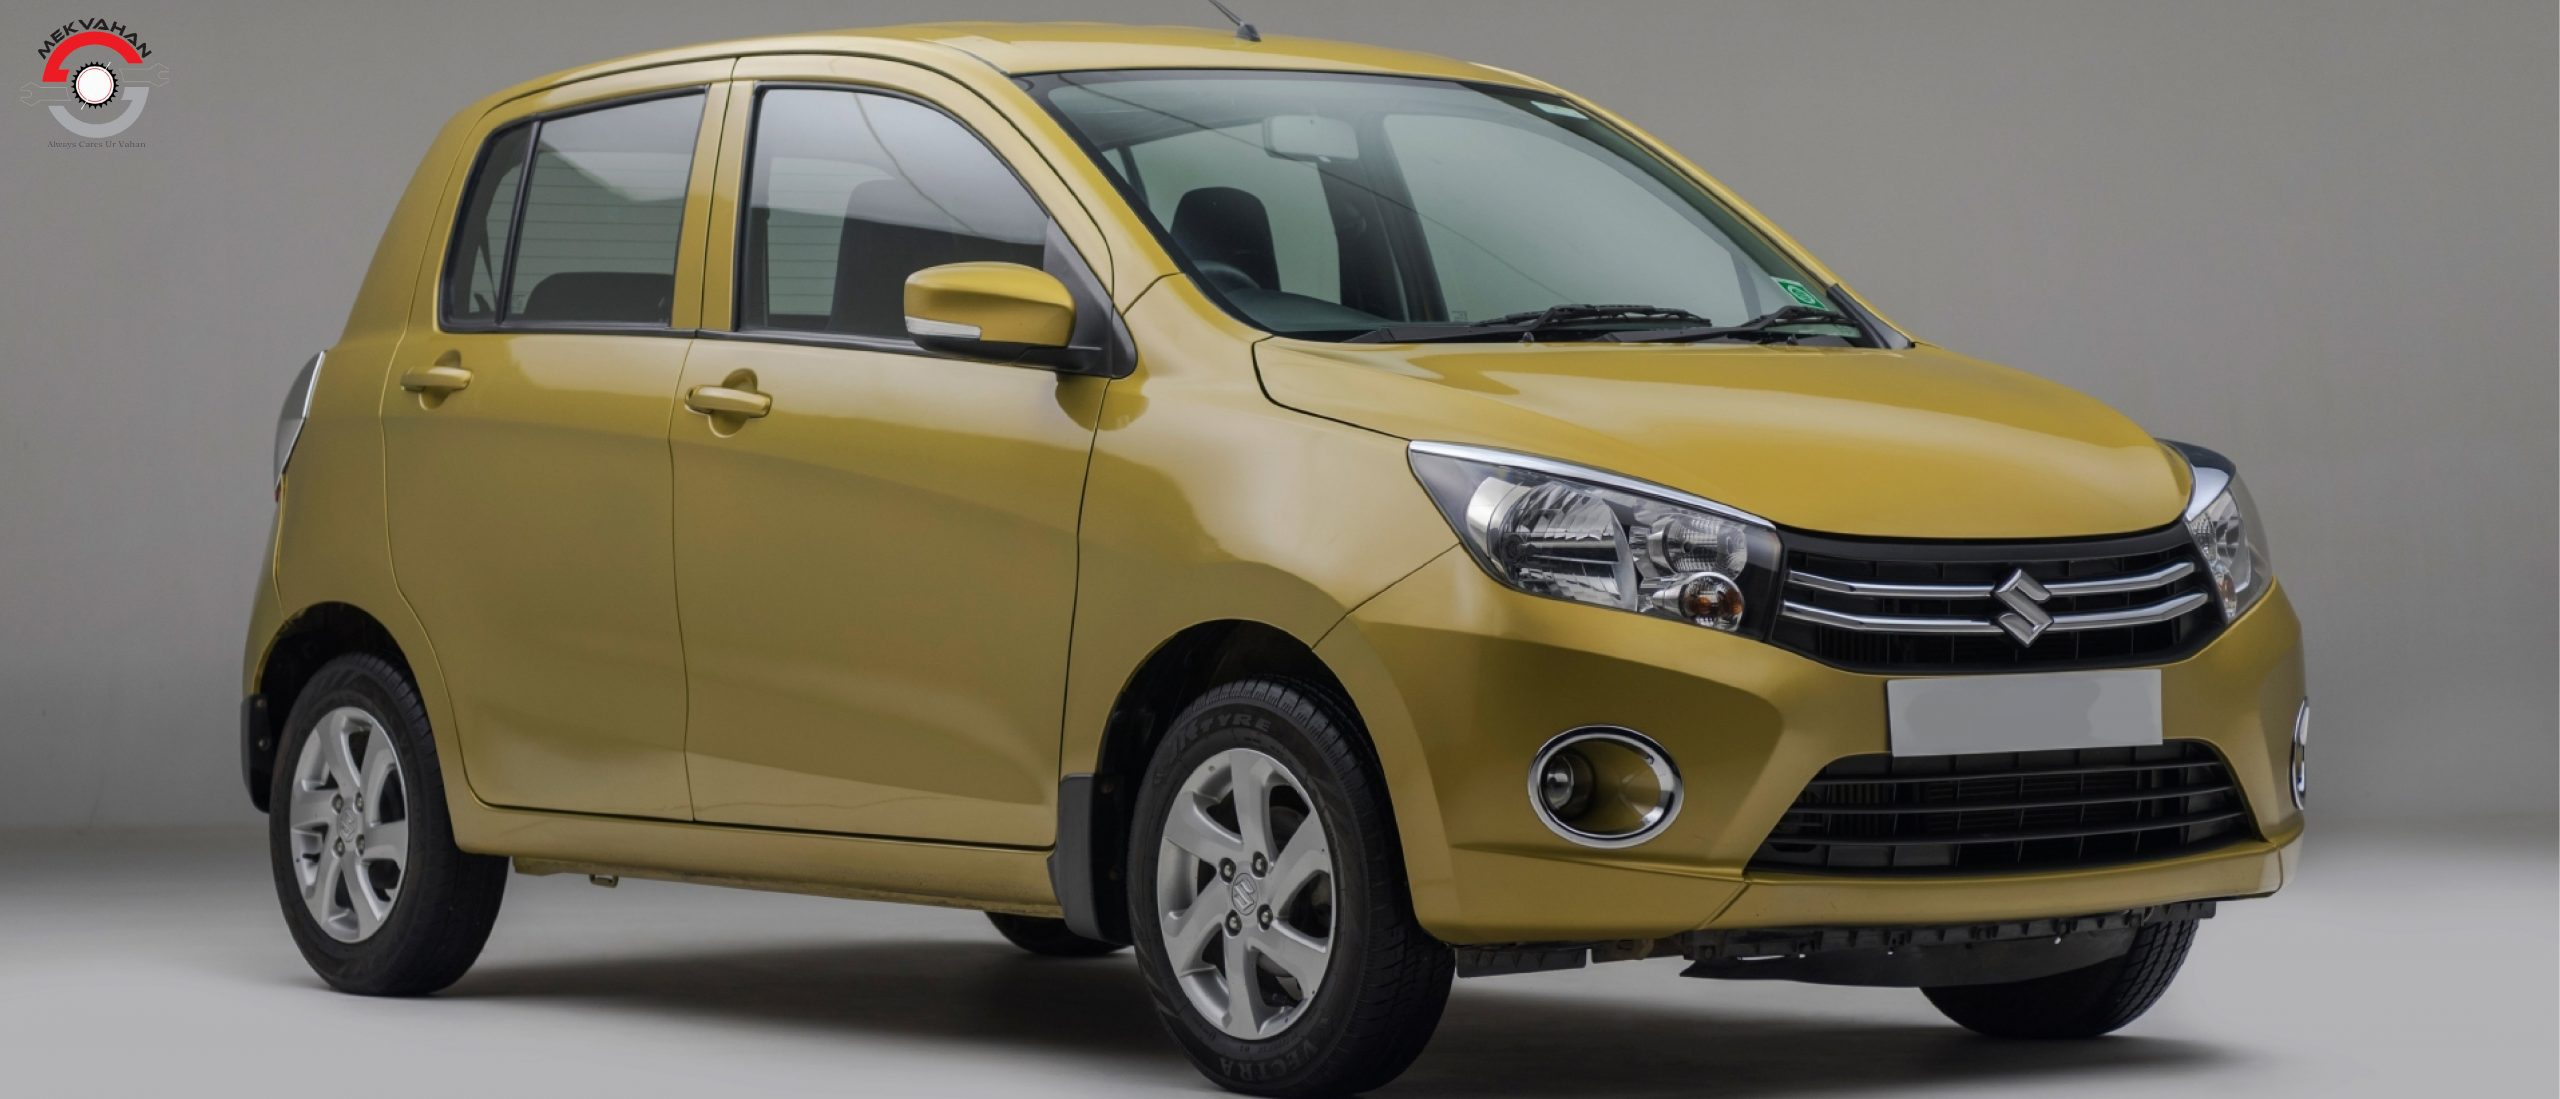 Popular CNG cars in india-